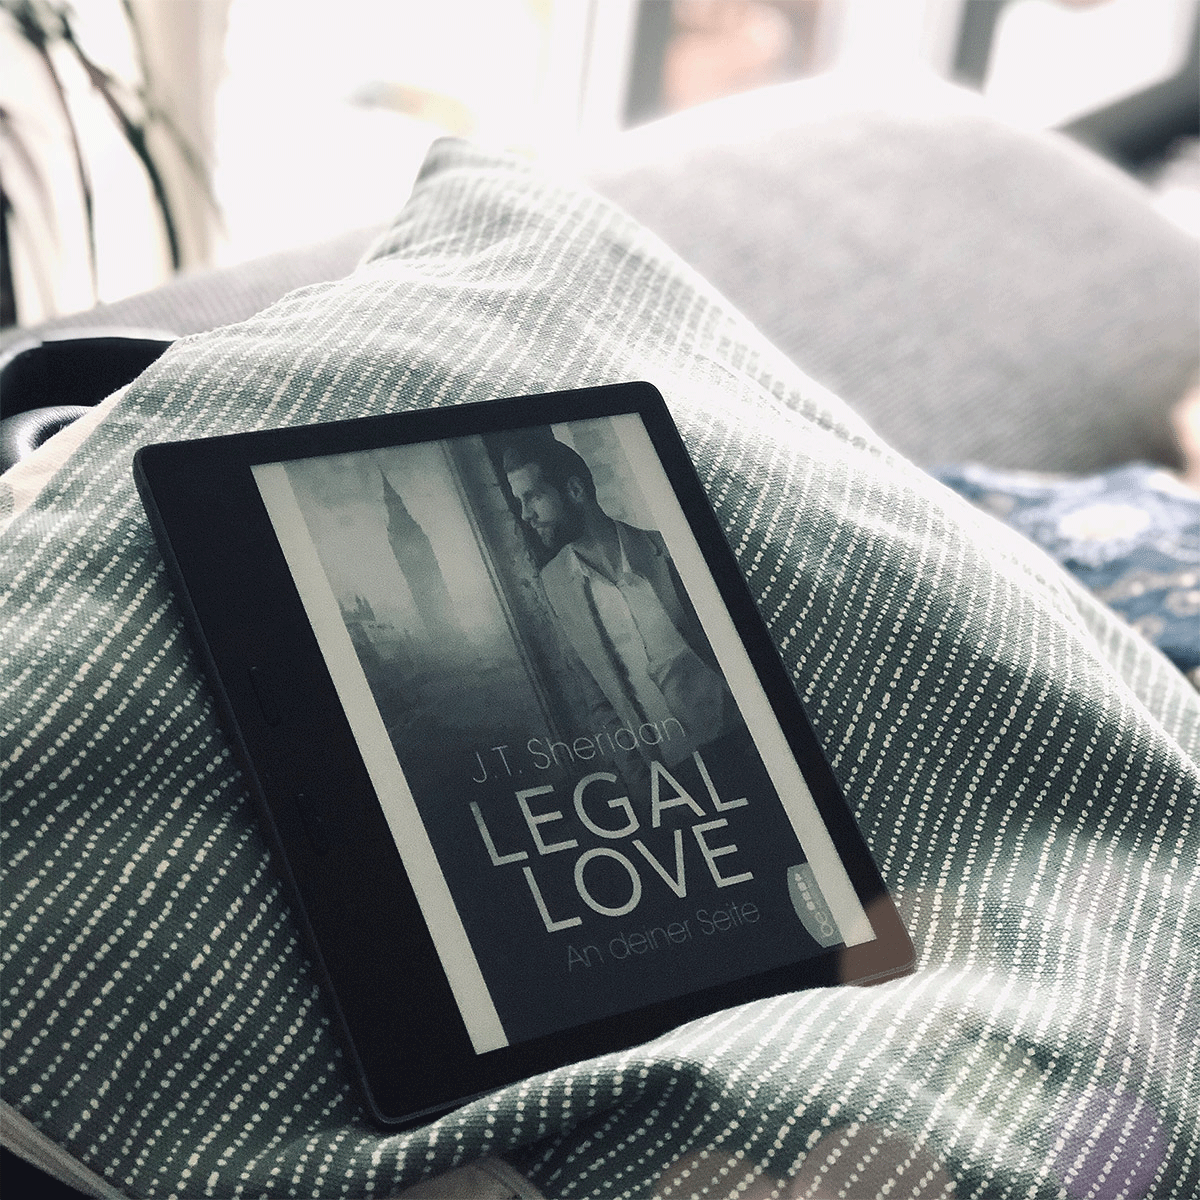 legal love sheridan ebook